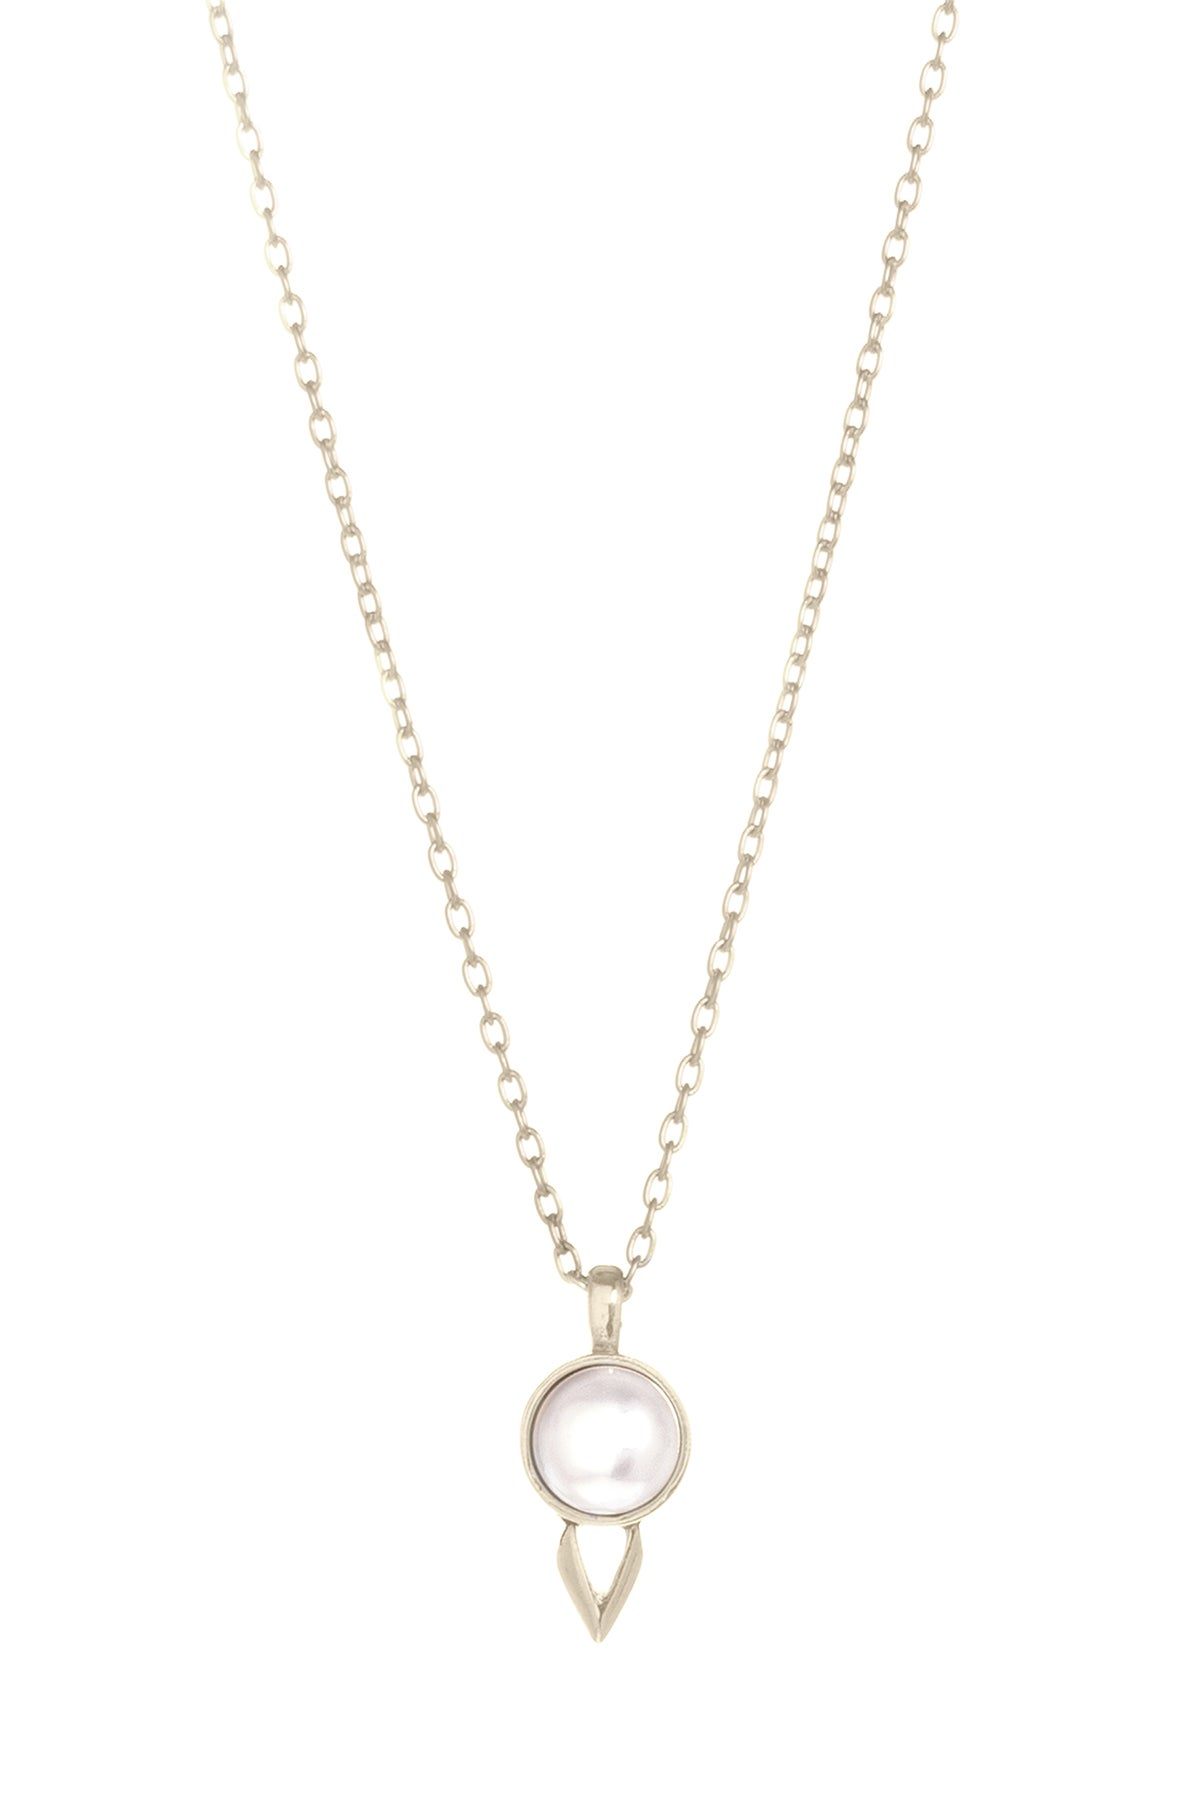 Image of PEARL MARU NECKLACE